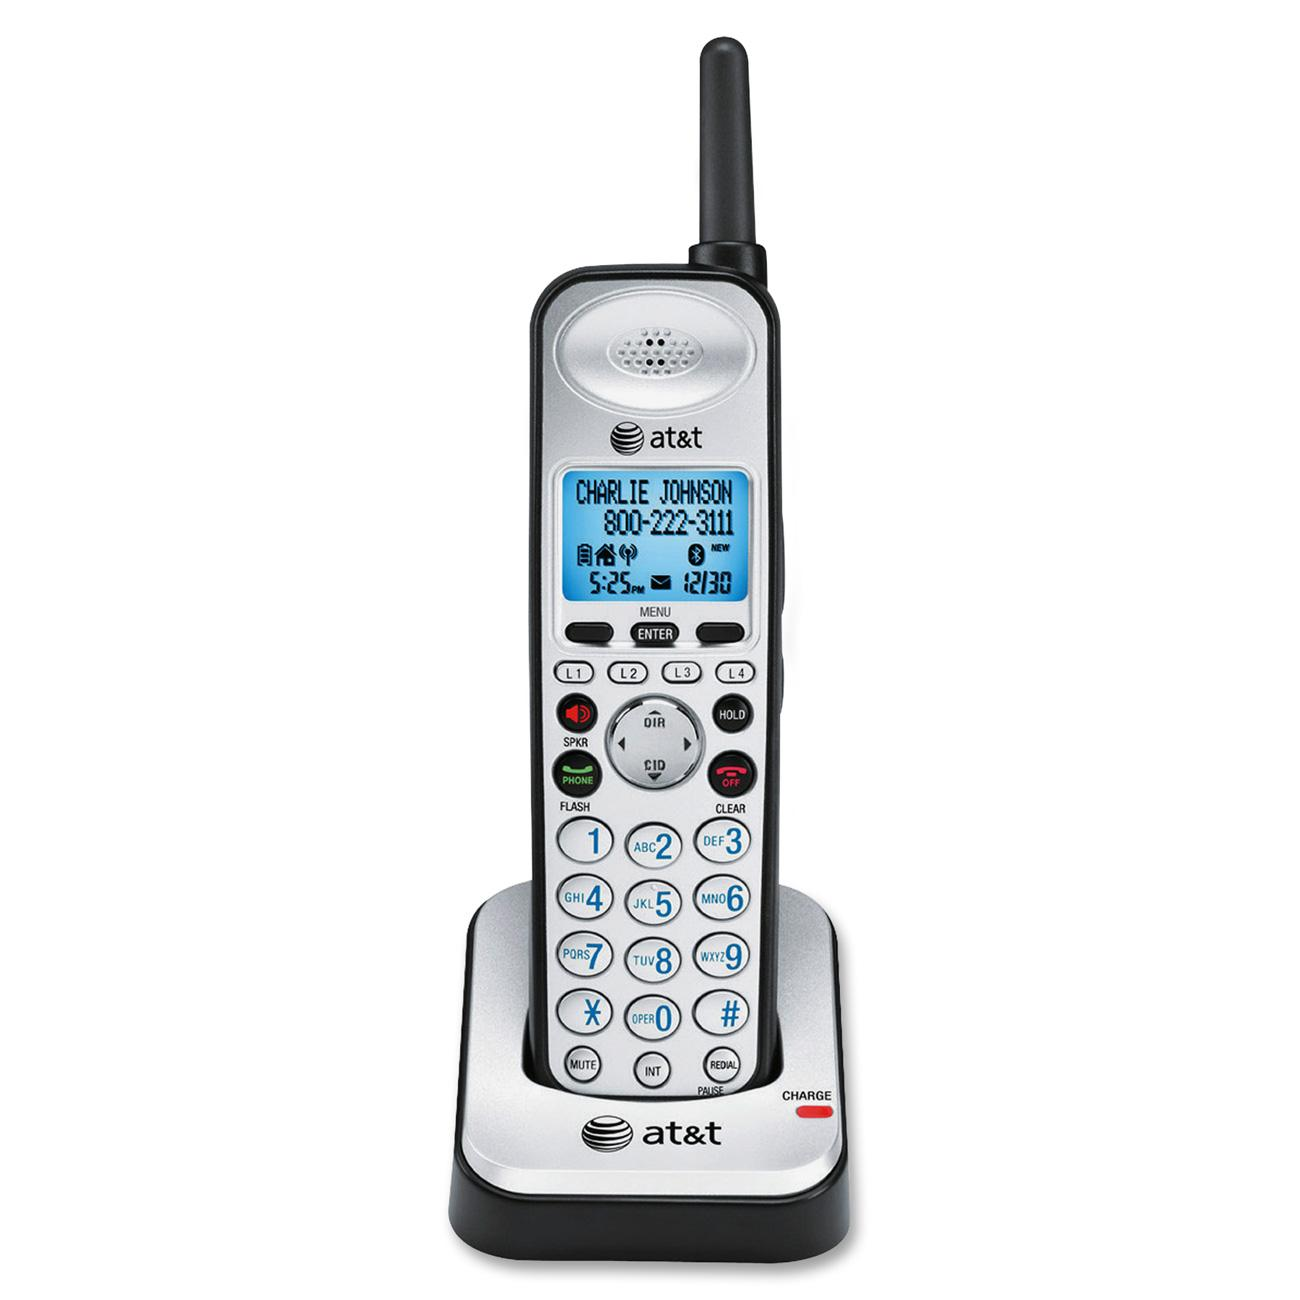 AT&T 4-line Accessory Handset, Black, Silver